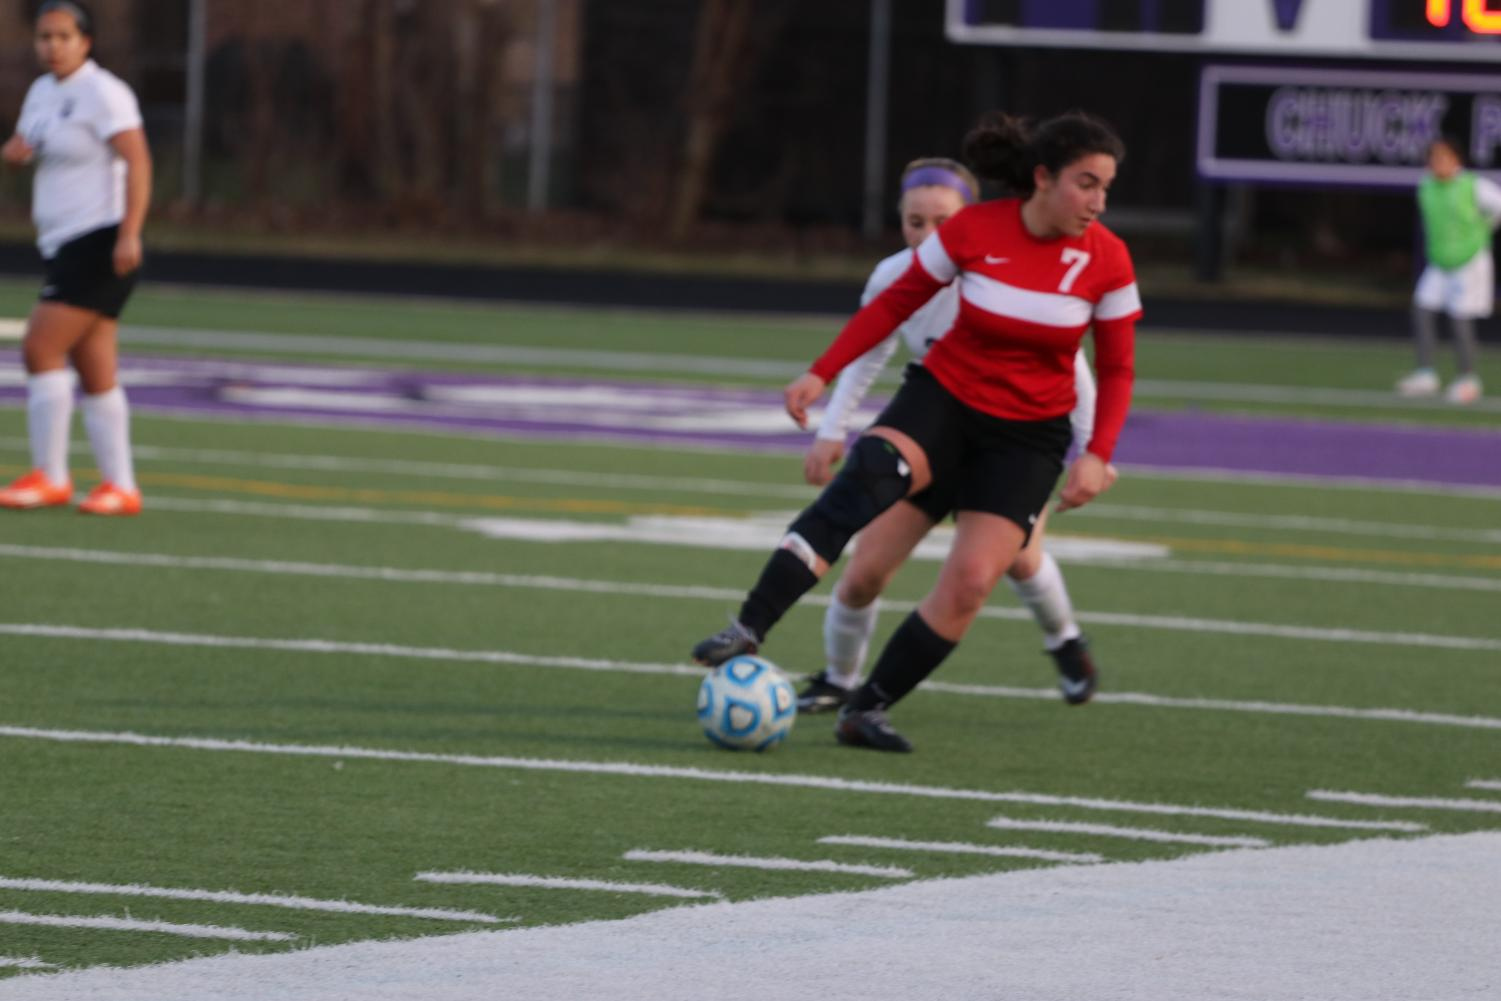 Senior forward Nikoleta Baxevanakis looking to make a pass to start the offensive attack